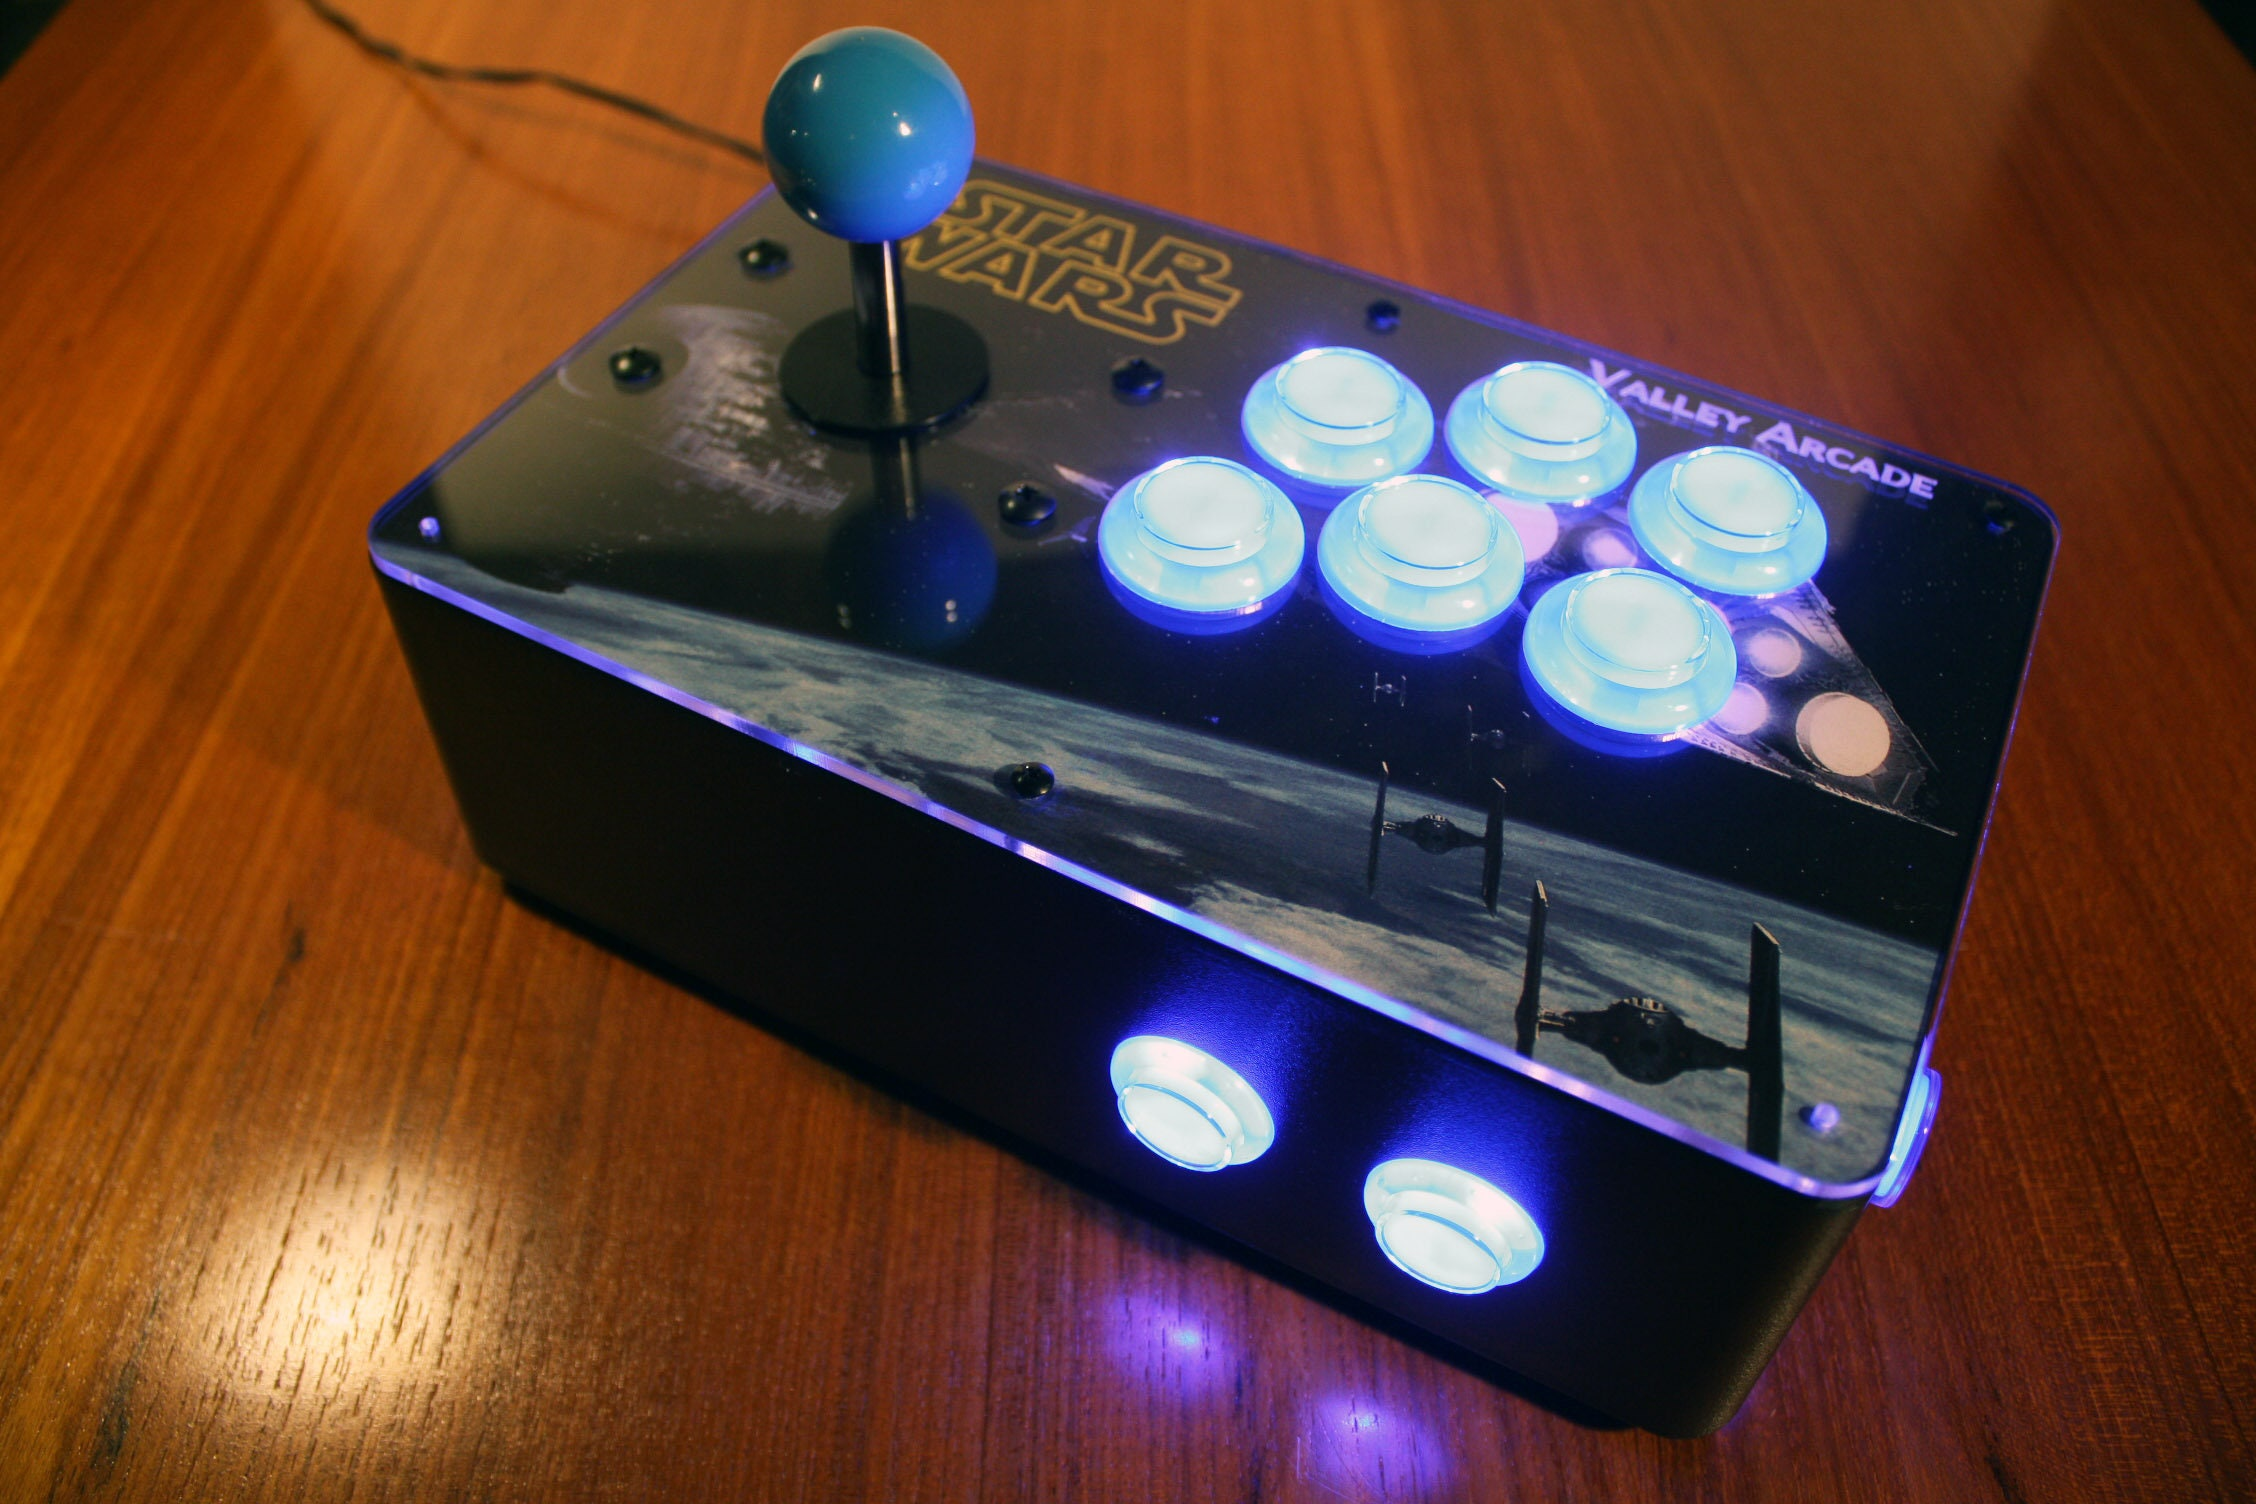 Venture Retrocade: a RetroPie home arcade console with lighted LED controls  (Star Wars theme)